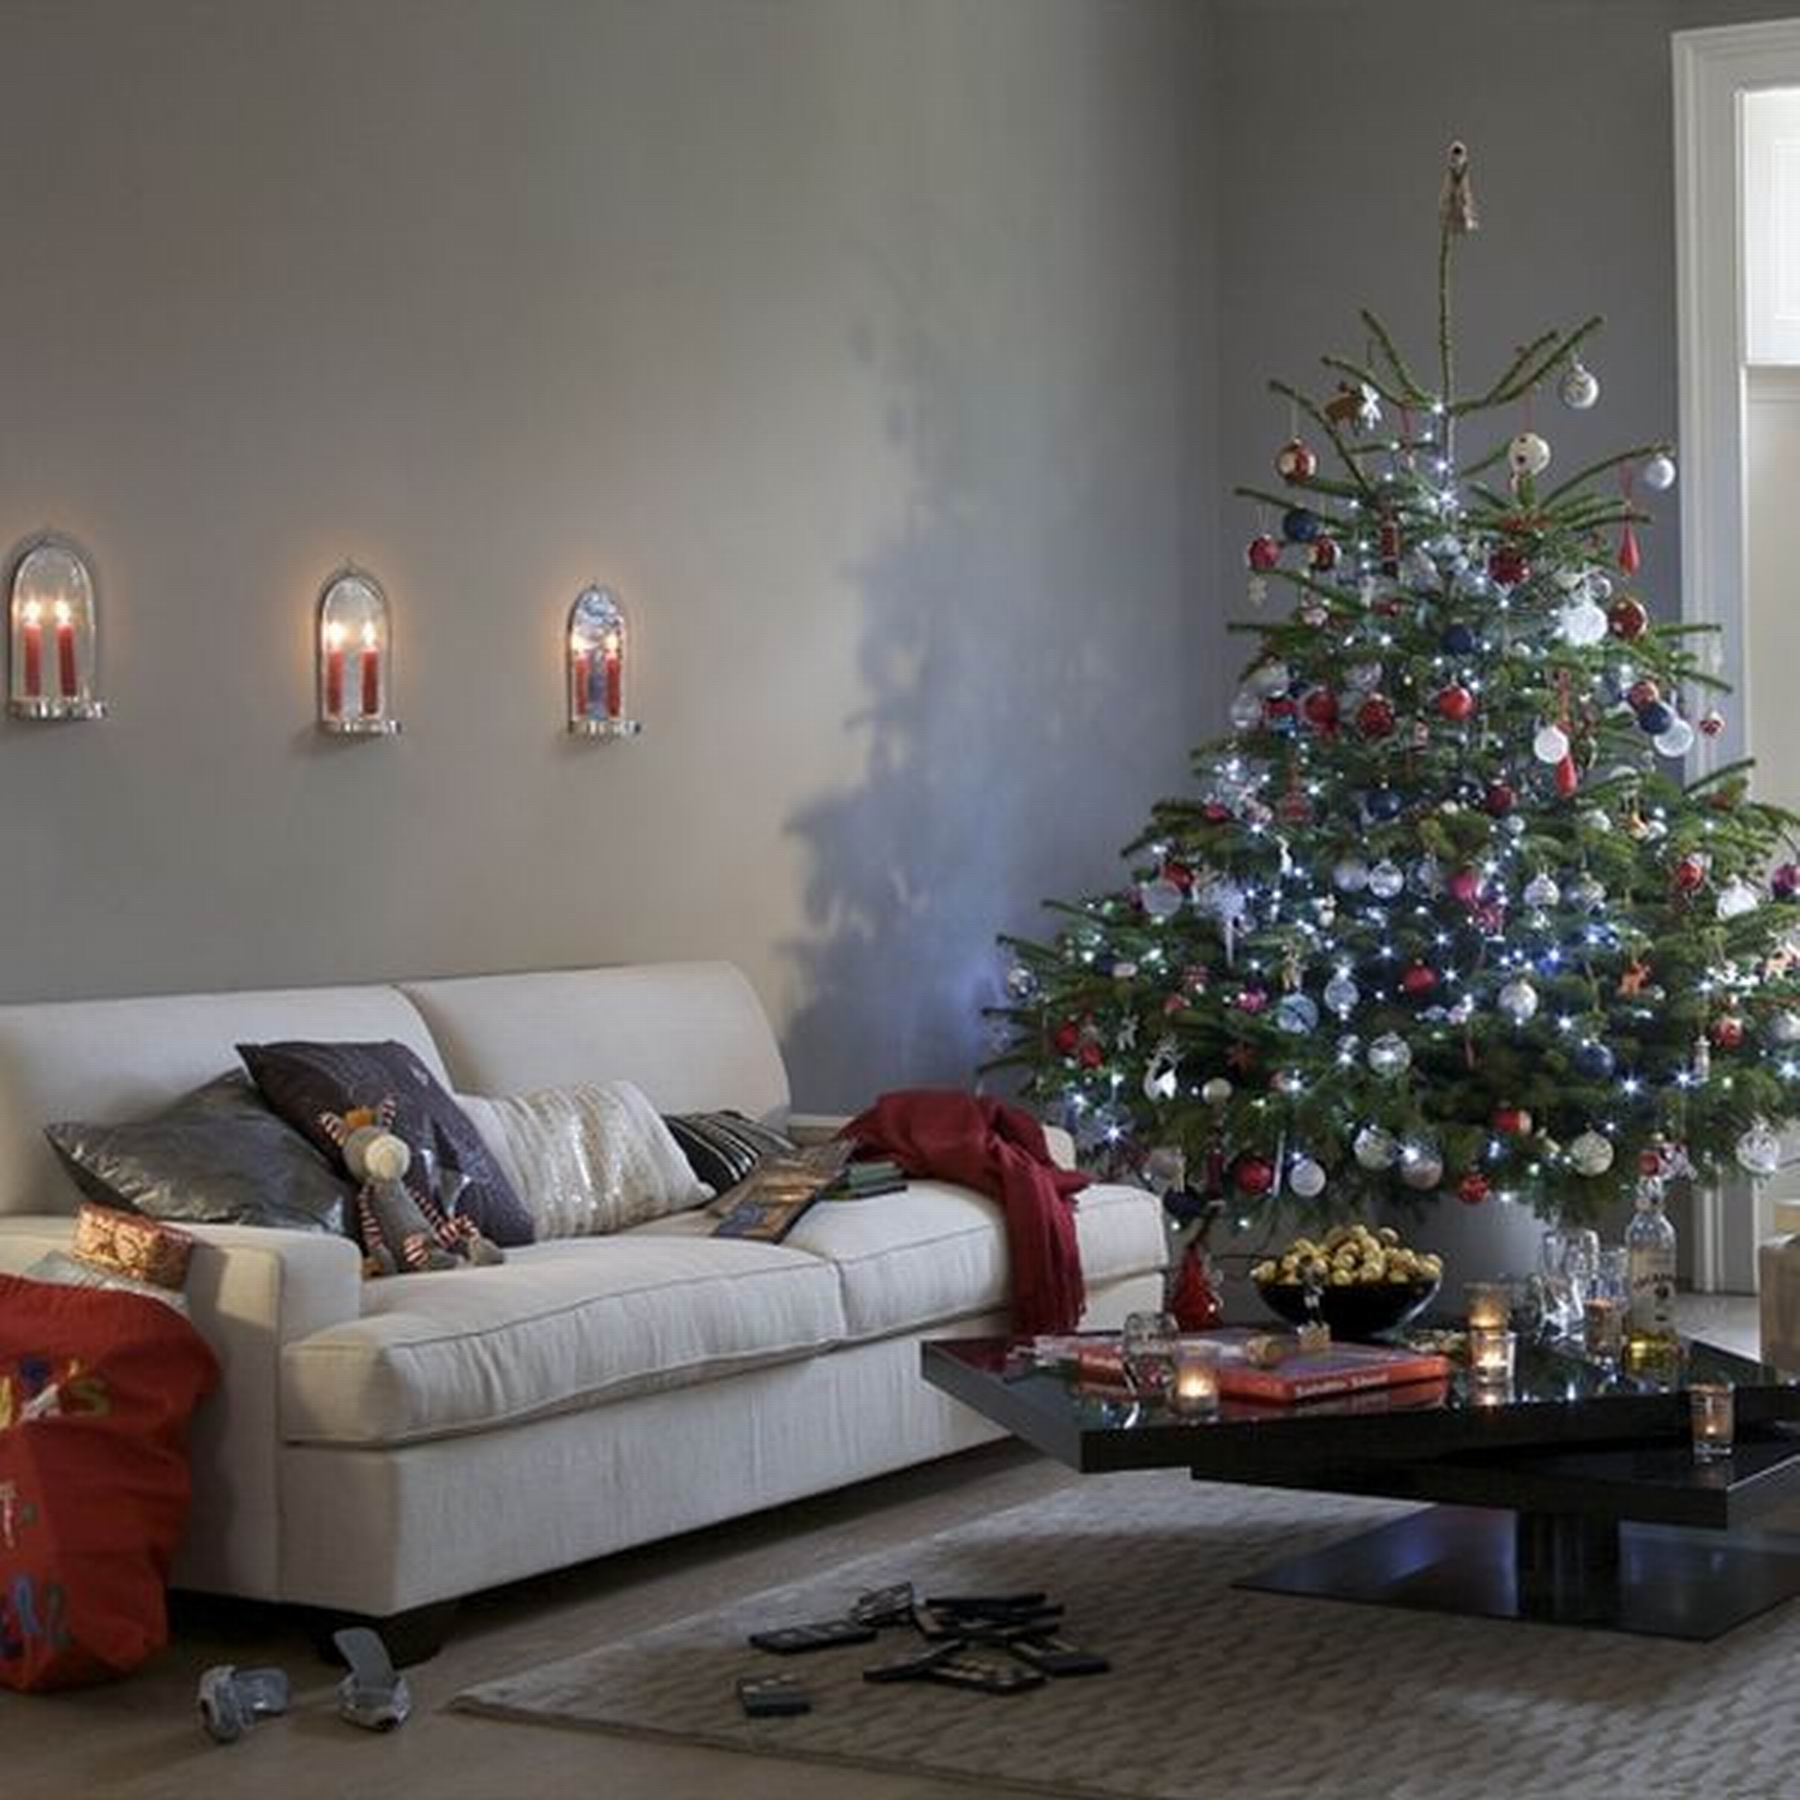 Featured Image of Minimalist Apartment Christmas Decoration